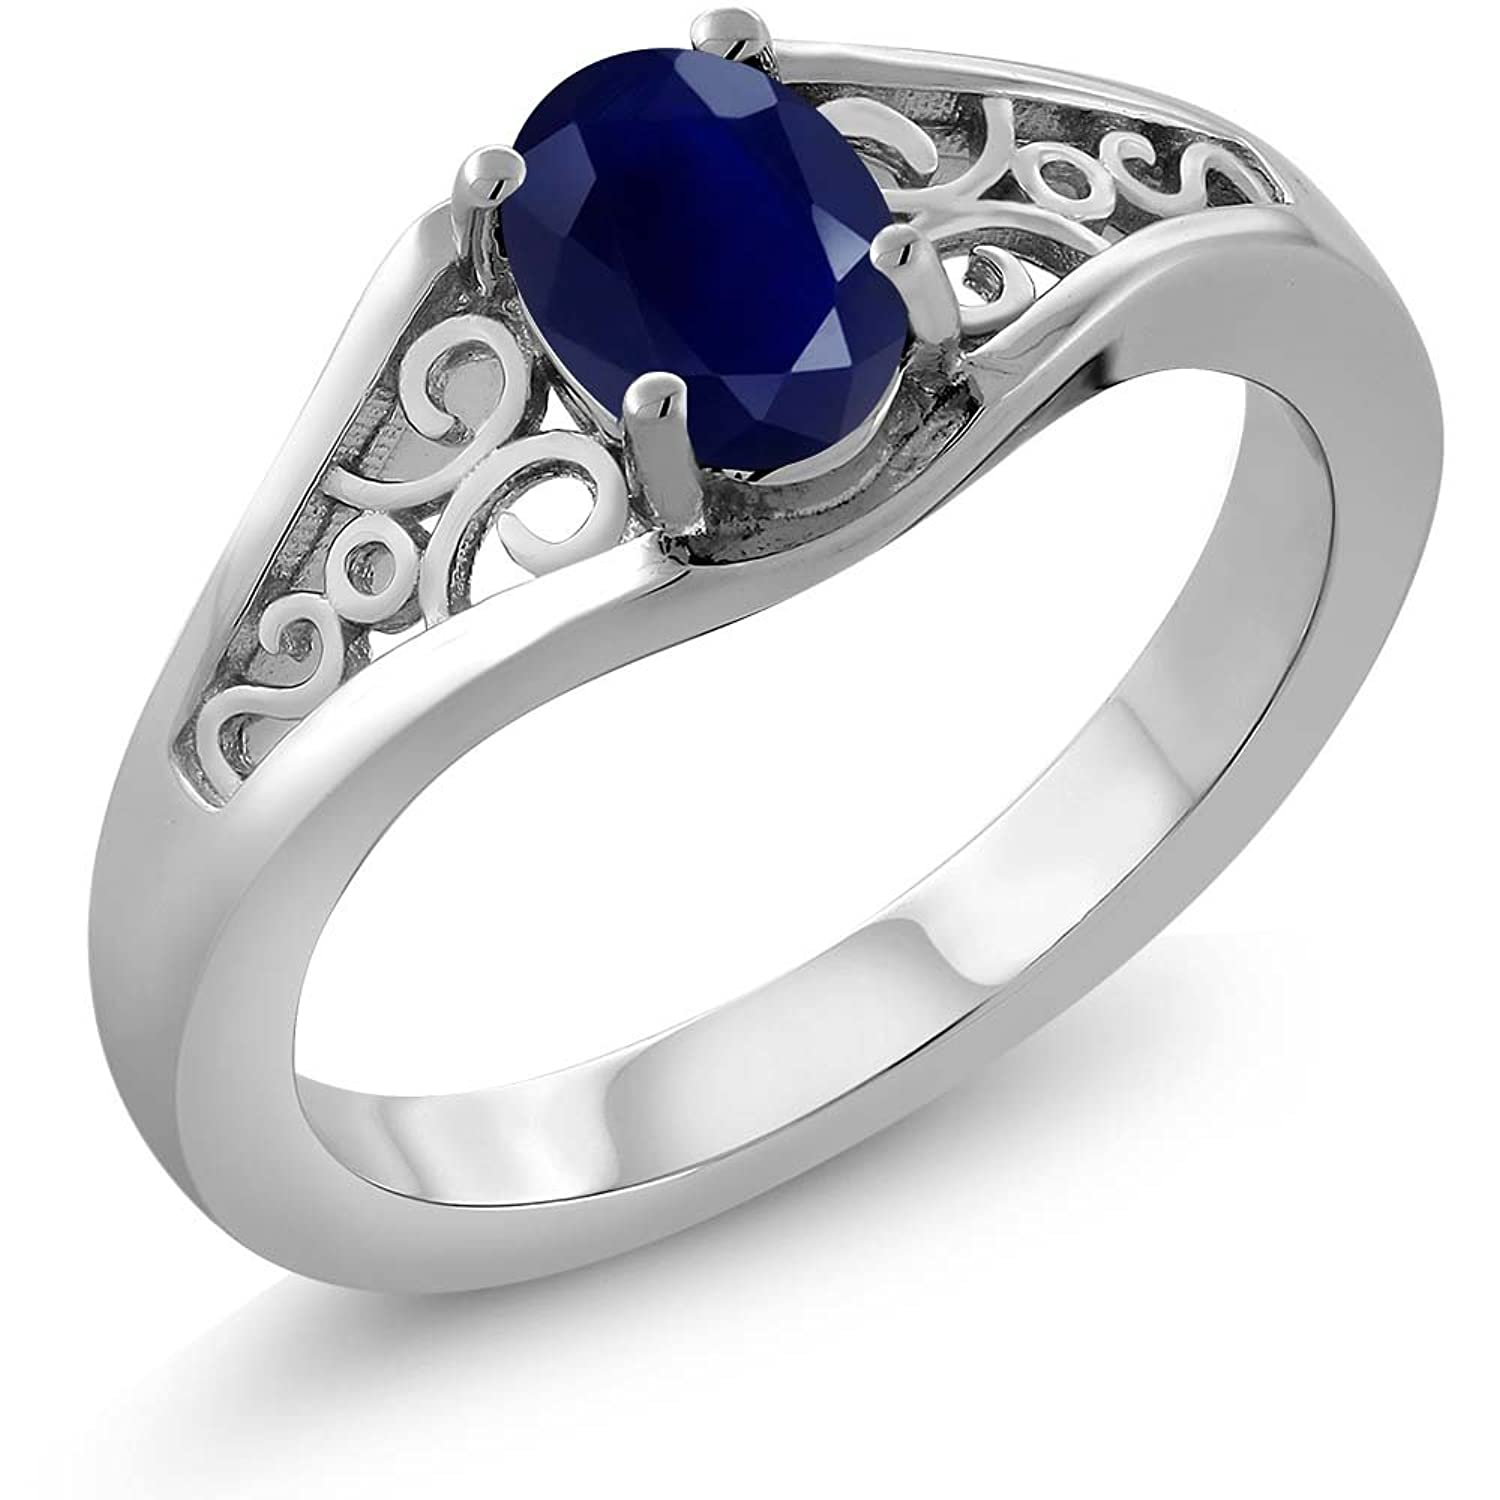 Sterling Silver Genuine Blue Sapphire Women's Ring (1.02 cttw, Available in size 5, 6, 7, 8, 9)